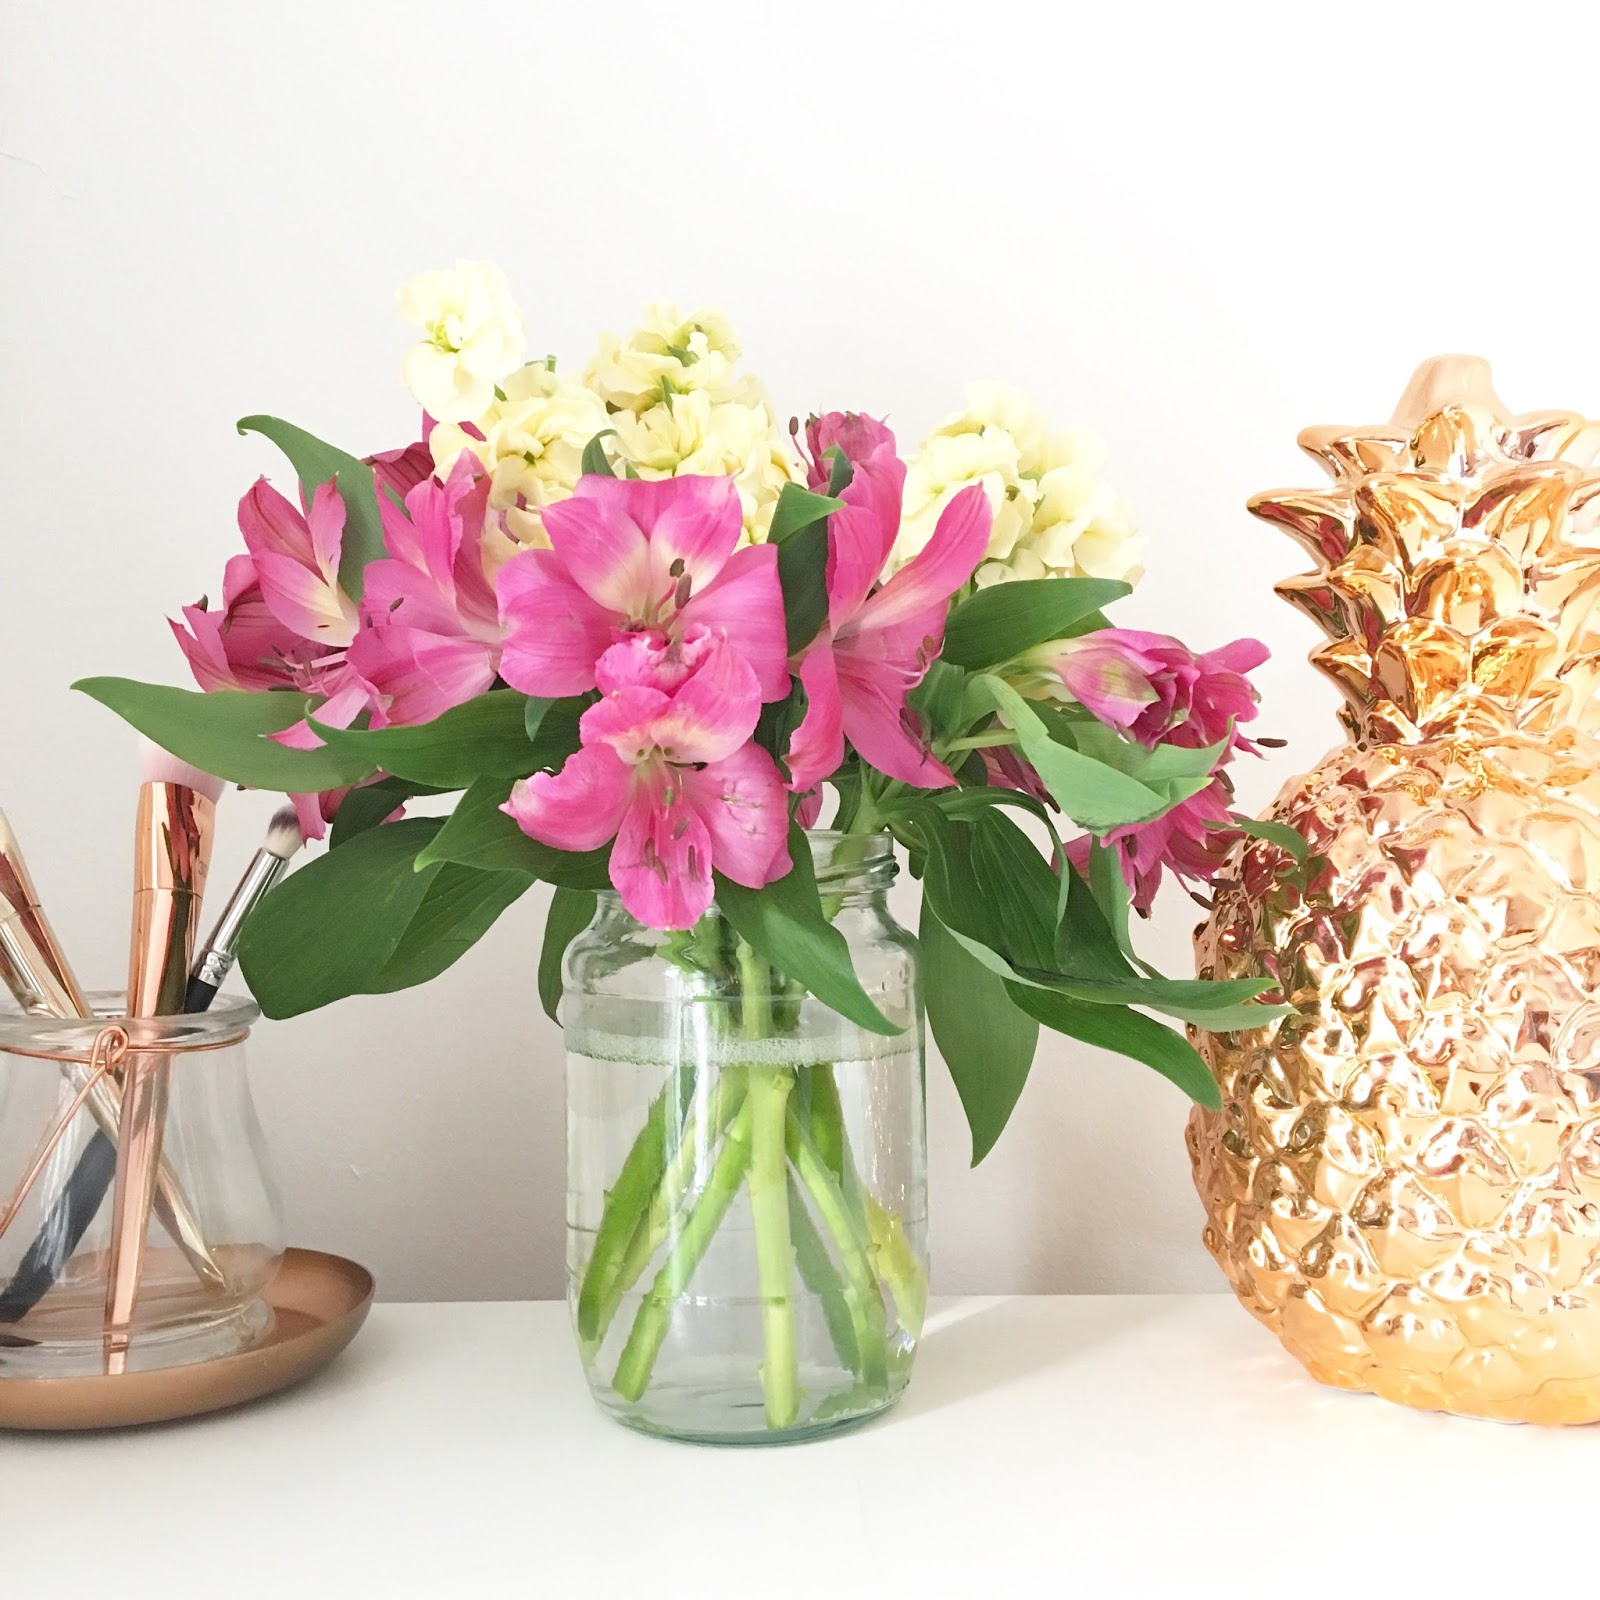 Copper pineapples and pretty pink flowers